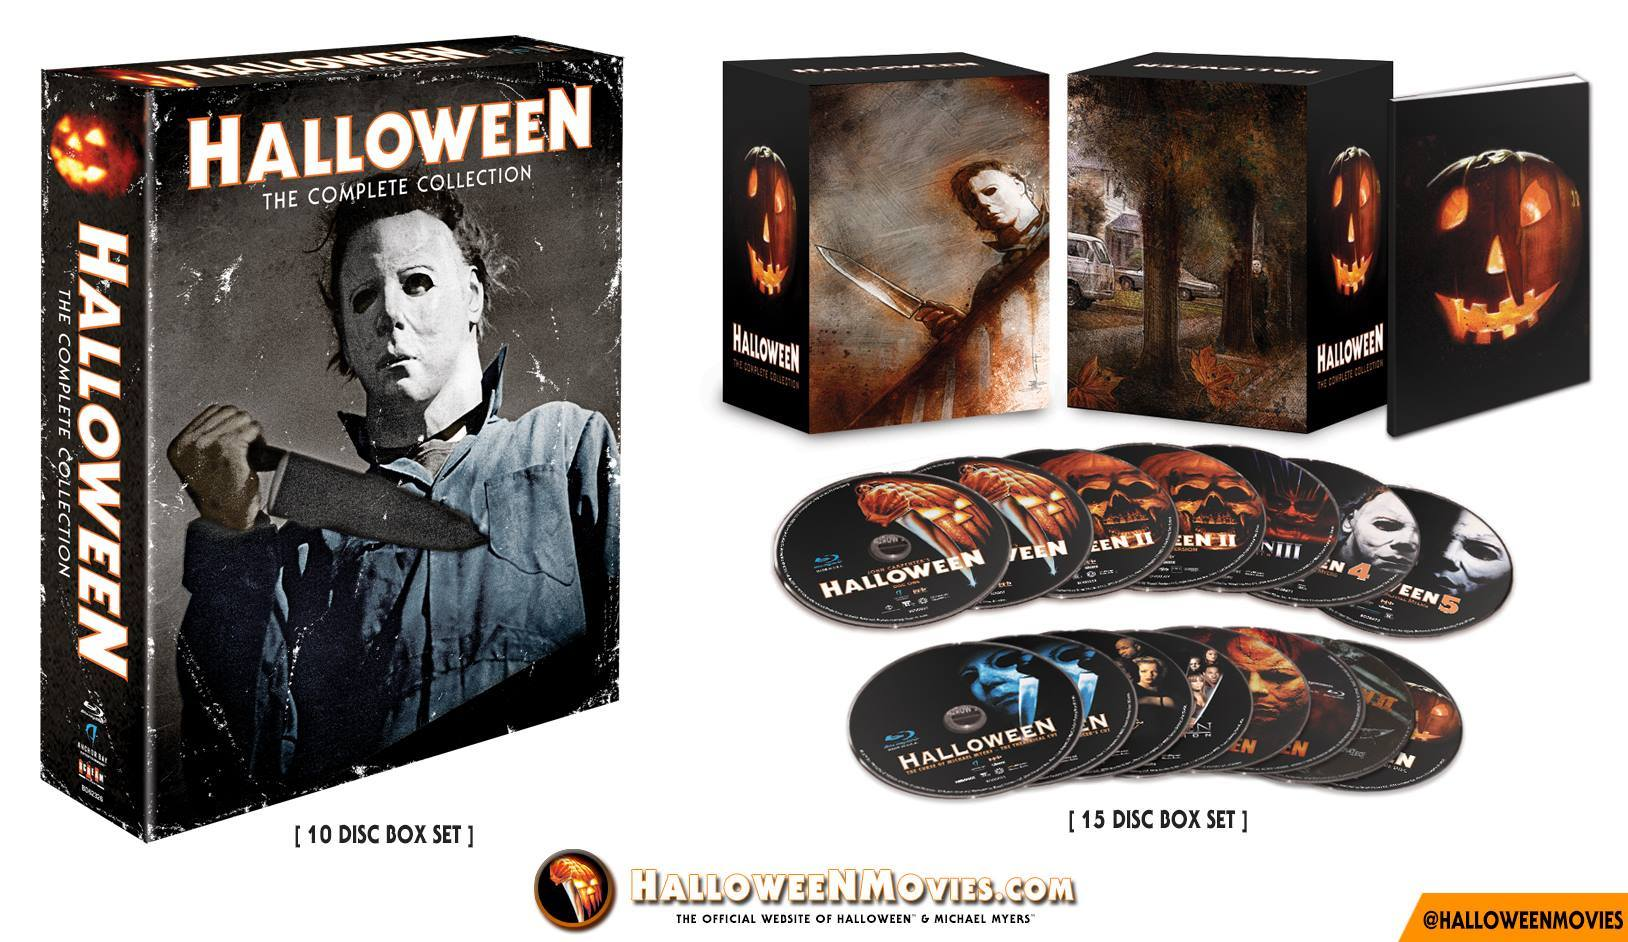 i think youre going to like this new halloween box set packaging